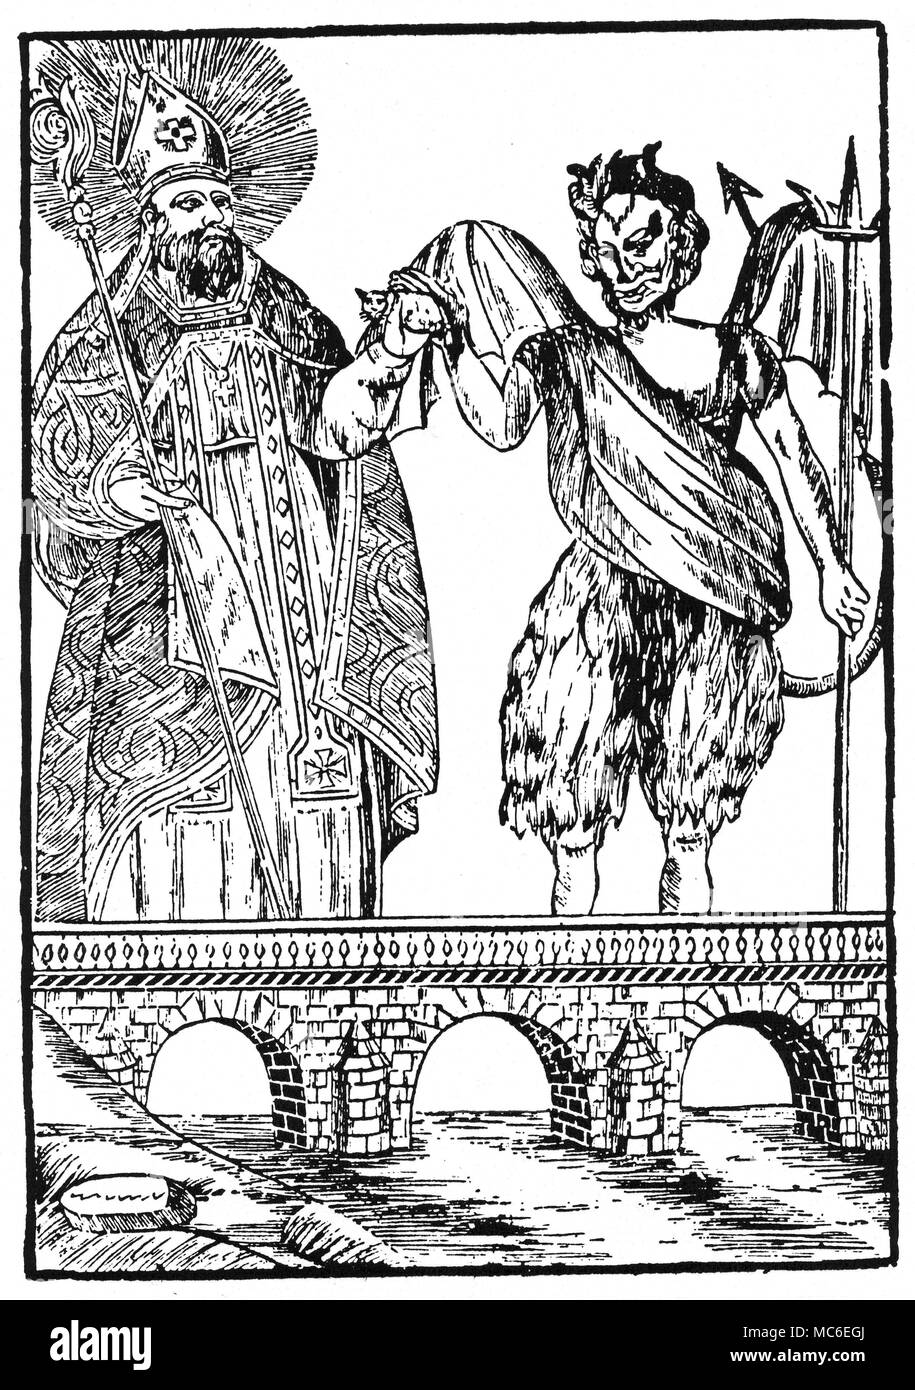 DEMONS - CATS A curious contract - Saint Cado offers the Devil a Cat, with the understanding that, in return, the Devil will build a bridge.   The print does not tell the whole story:  apparently, Saint Cado had tricked the Devil, who thought that he would receive, in return for his labours, a human soul.  Woodengraving of 1855. - Stock Image